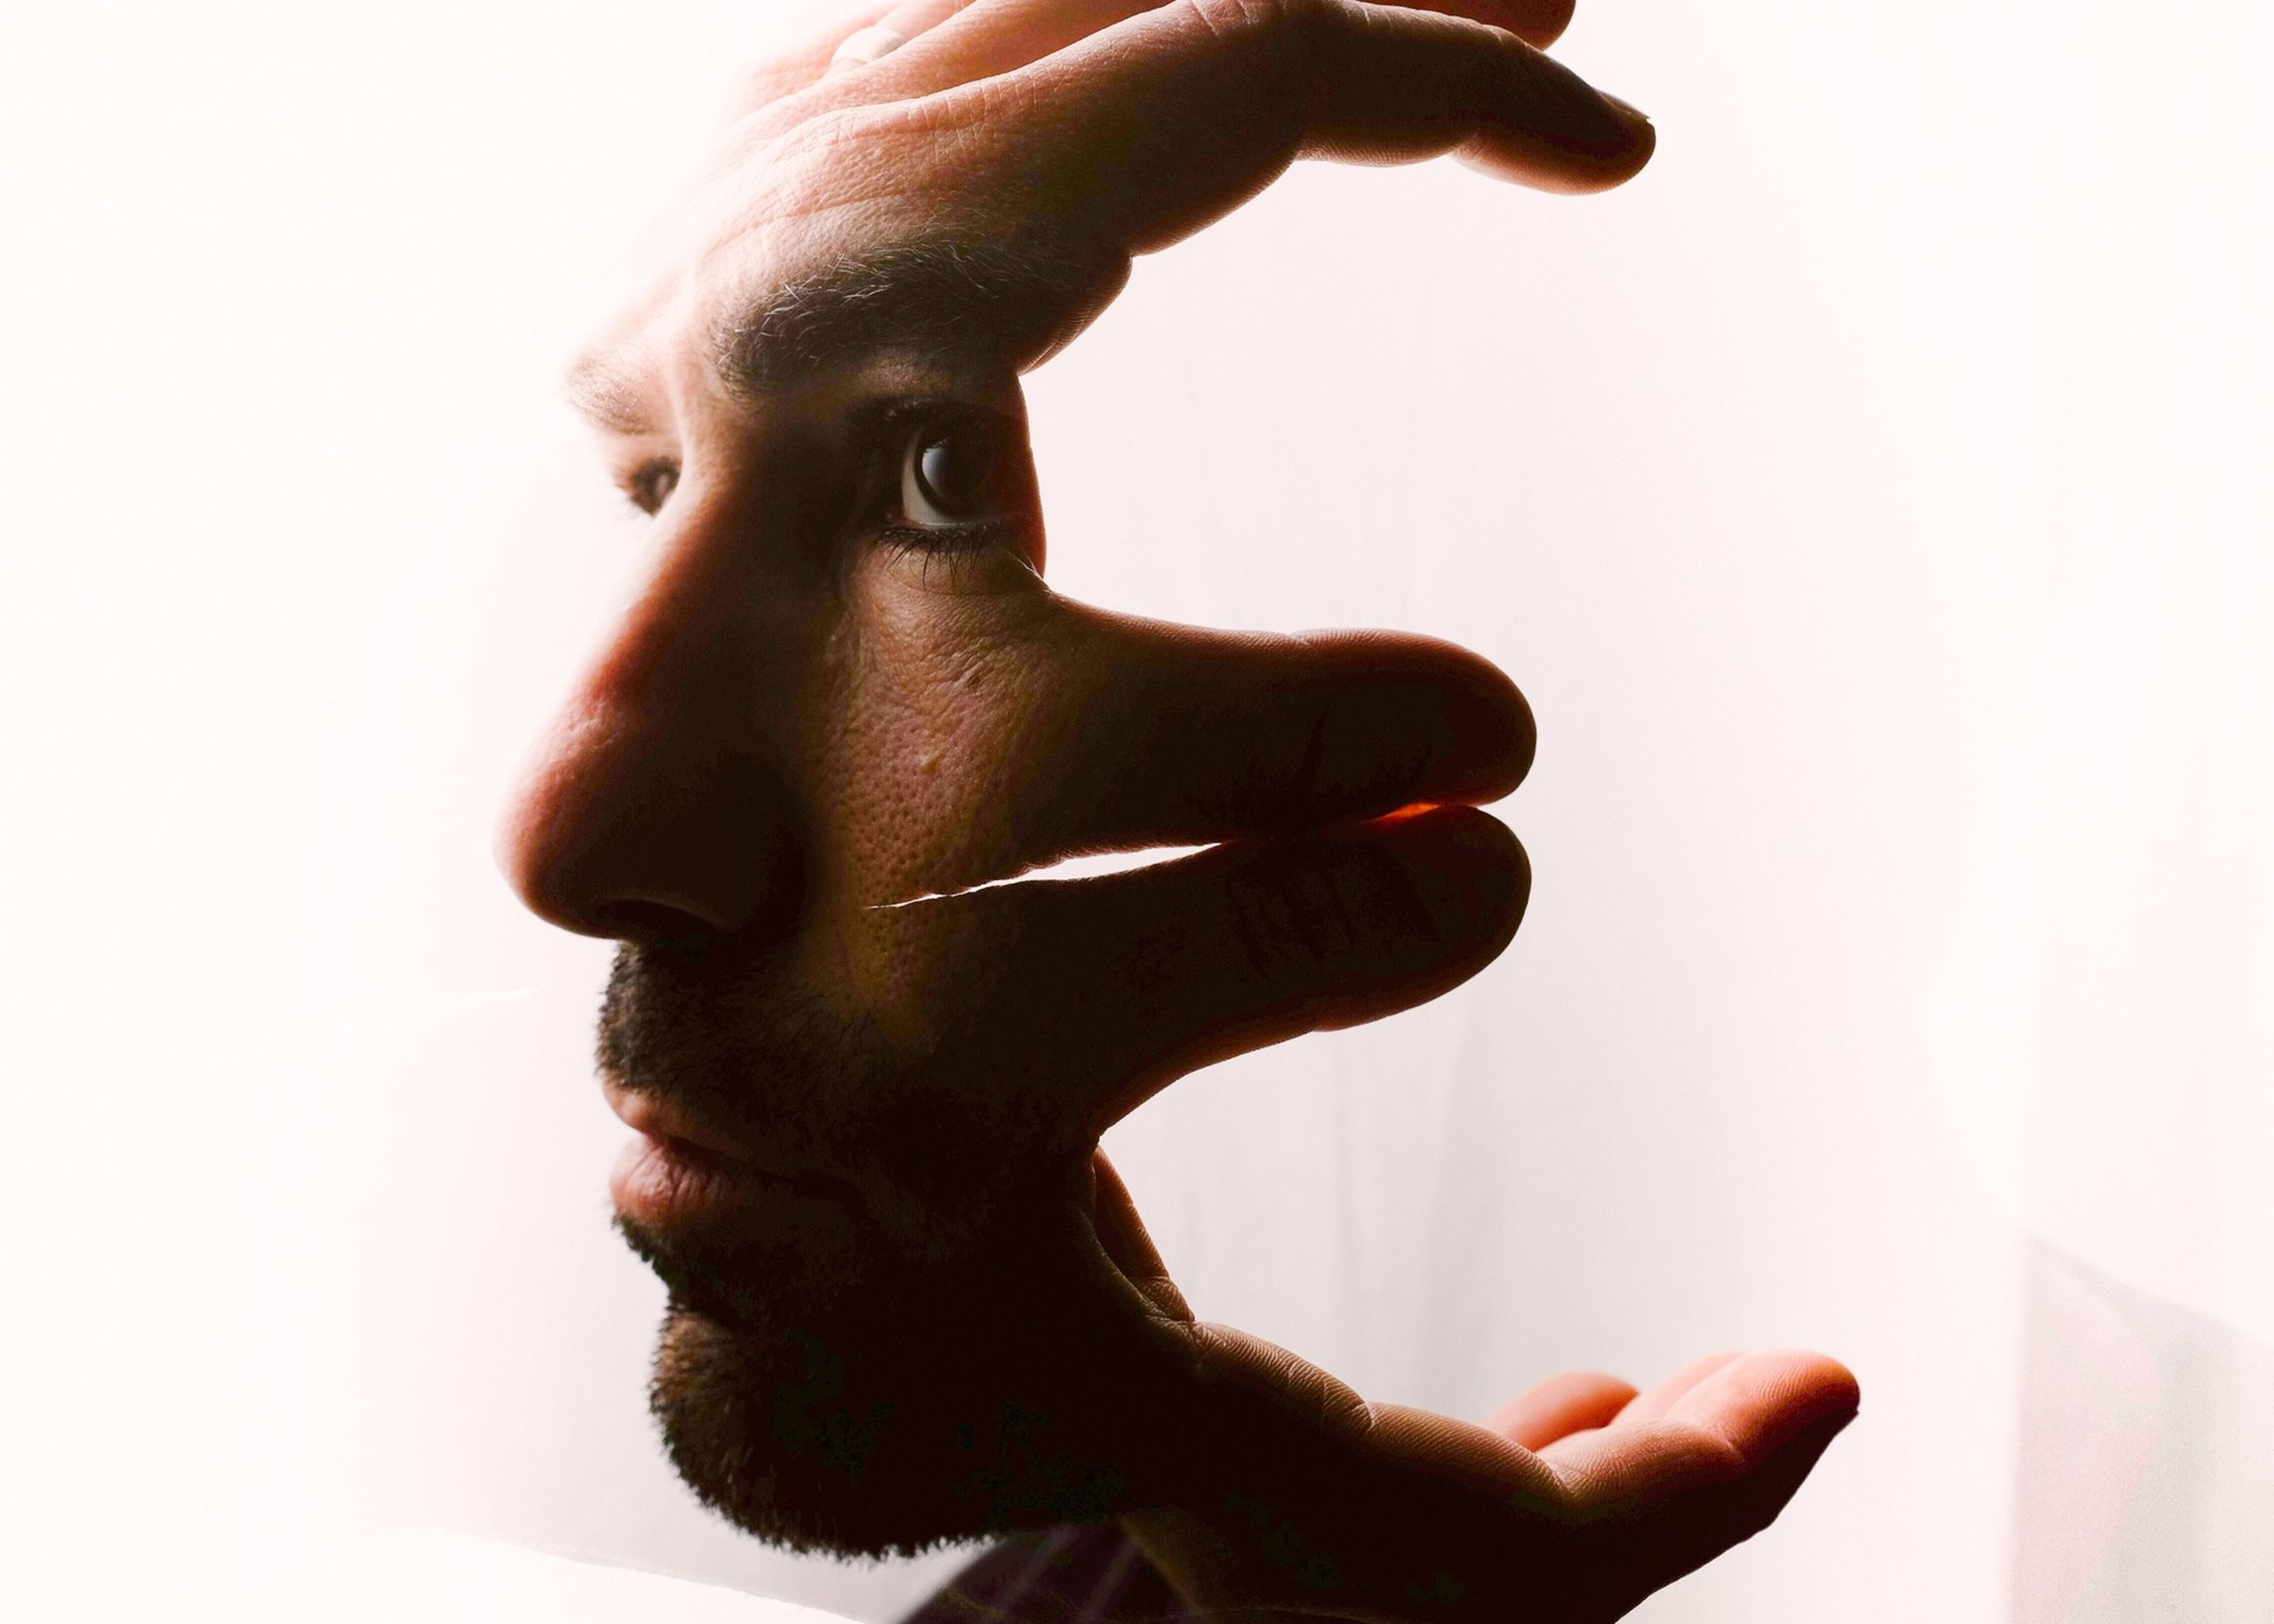 person, studio shot, white background, holding, lifestyles, copy space, part of, human finger, men, leisure activity, cropped, close-up, unrecognizable person, clear sky, indoors, cut out, standing